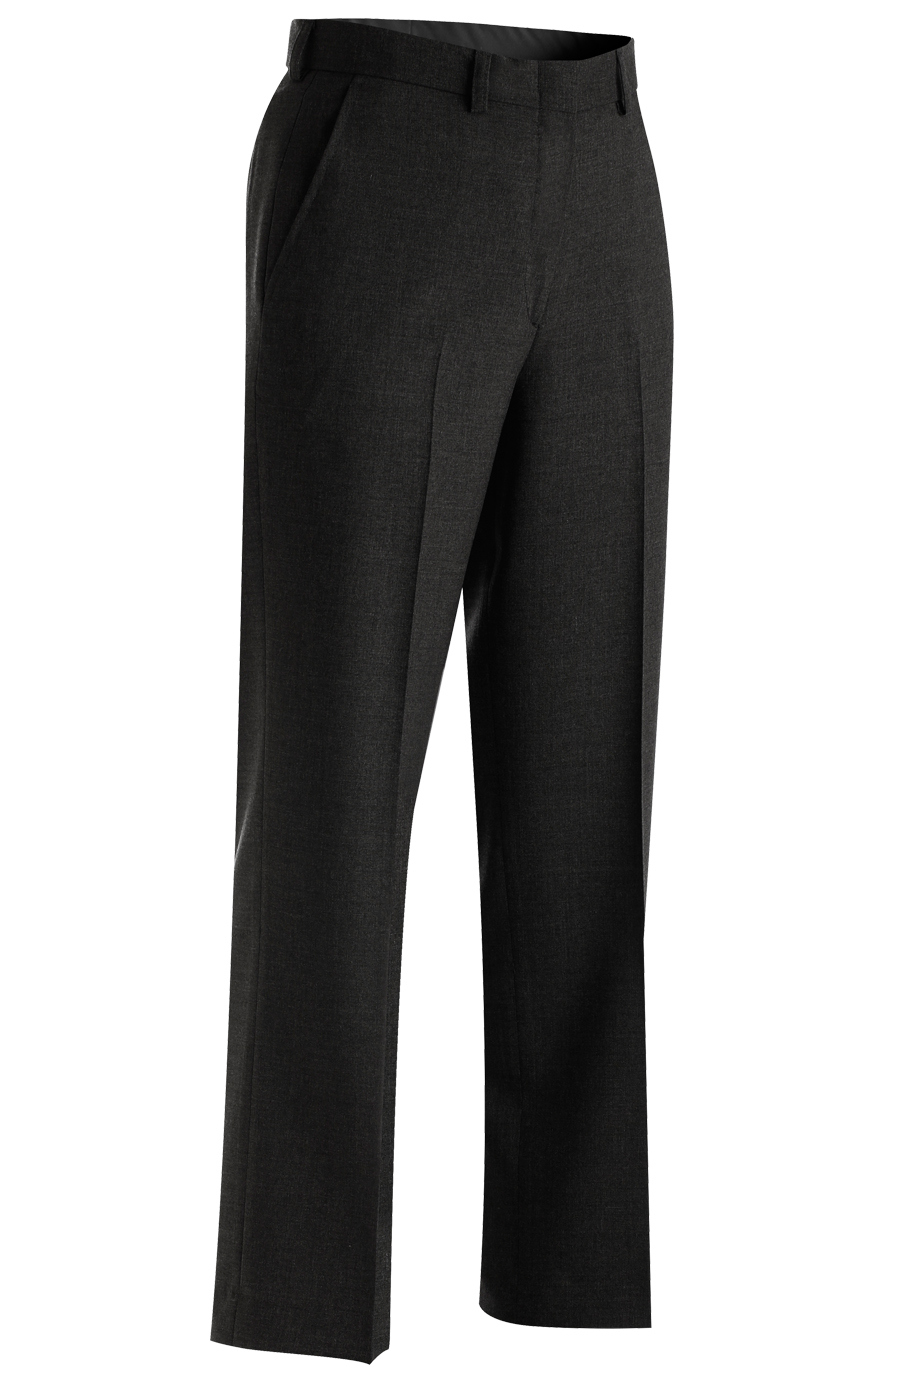 Edwards Ladies Wool Blend Flat Front Dress Pant-EG